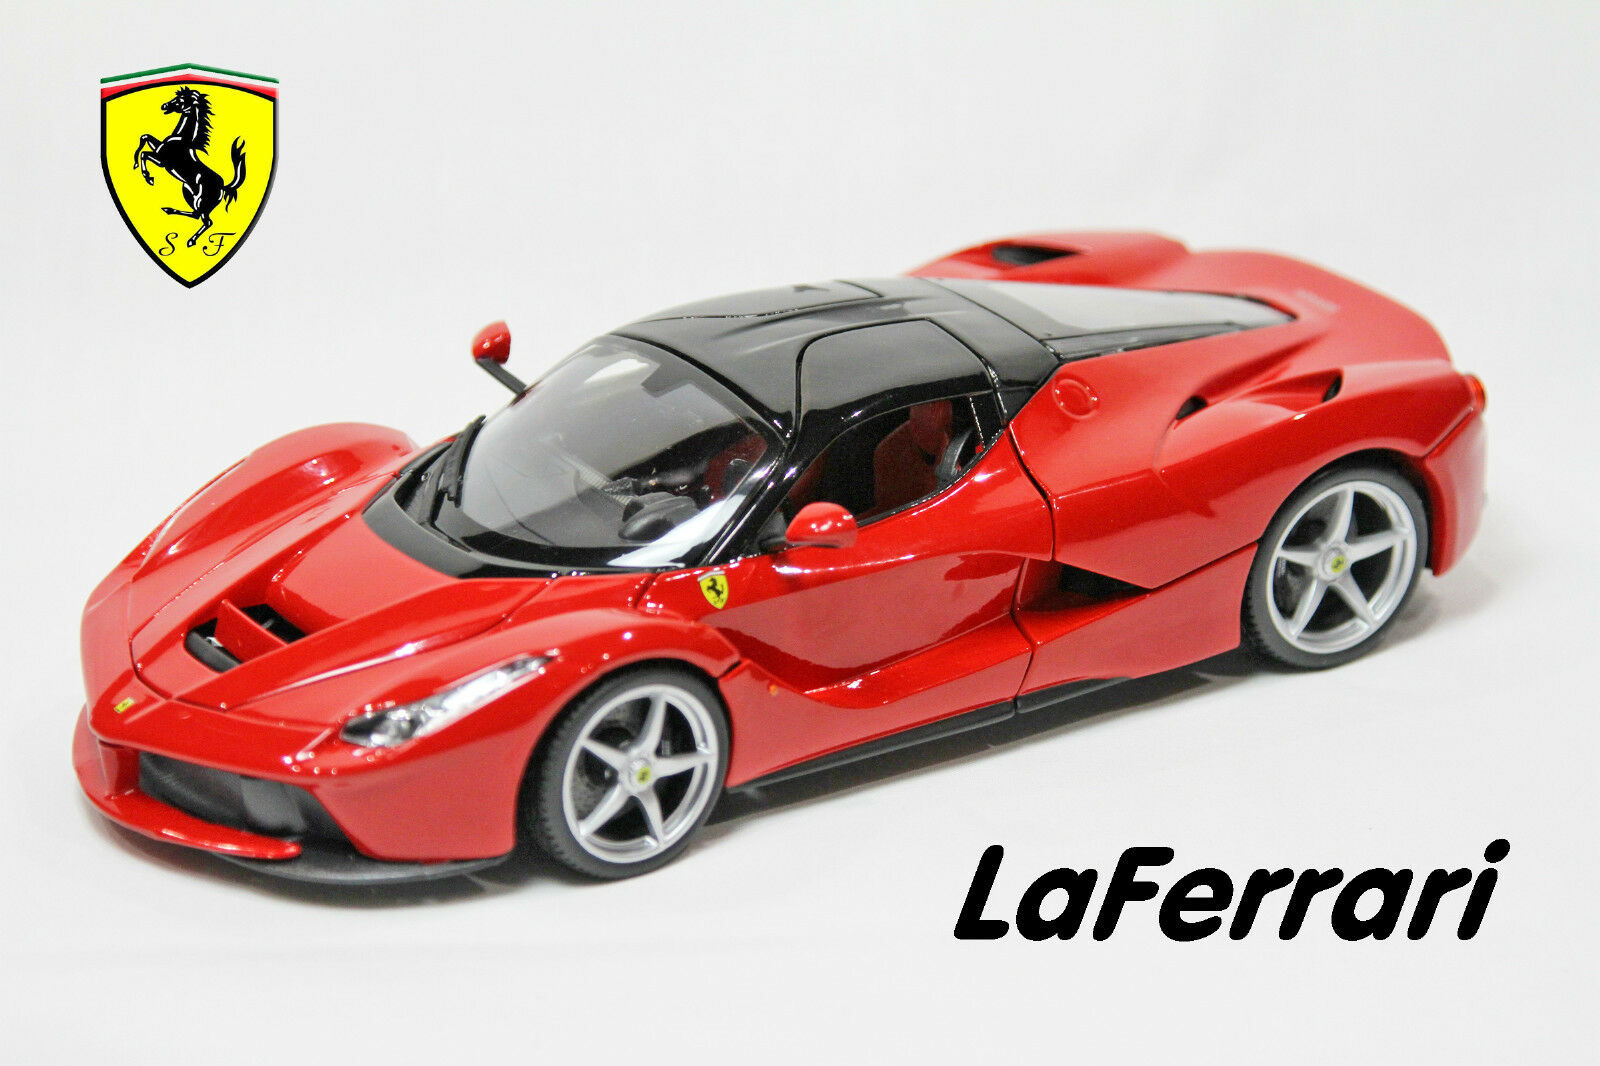 buy ferrari laferrari uk html with 118 Scale Diecast Model Of The Laferrari Hybrid 172059897653 on Citroen Prices Ds3 Cabrio Racing In Britain Limits Deliveries To 10 Units 78685 as well 118 Scale Diecast Model Of The LaFerrari Hybrid 172059897653 furthermore Laferrari Remote Control Electric Rc Car La moreover News Hublot Watches Ferrari Edition in addition Photos.